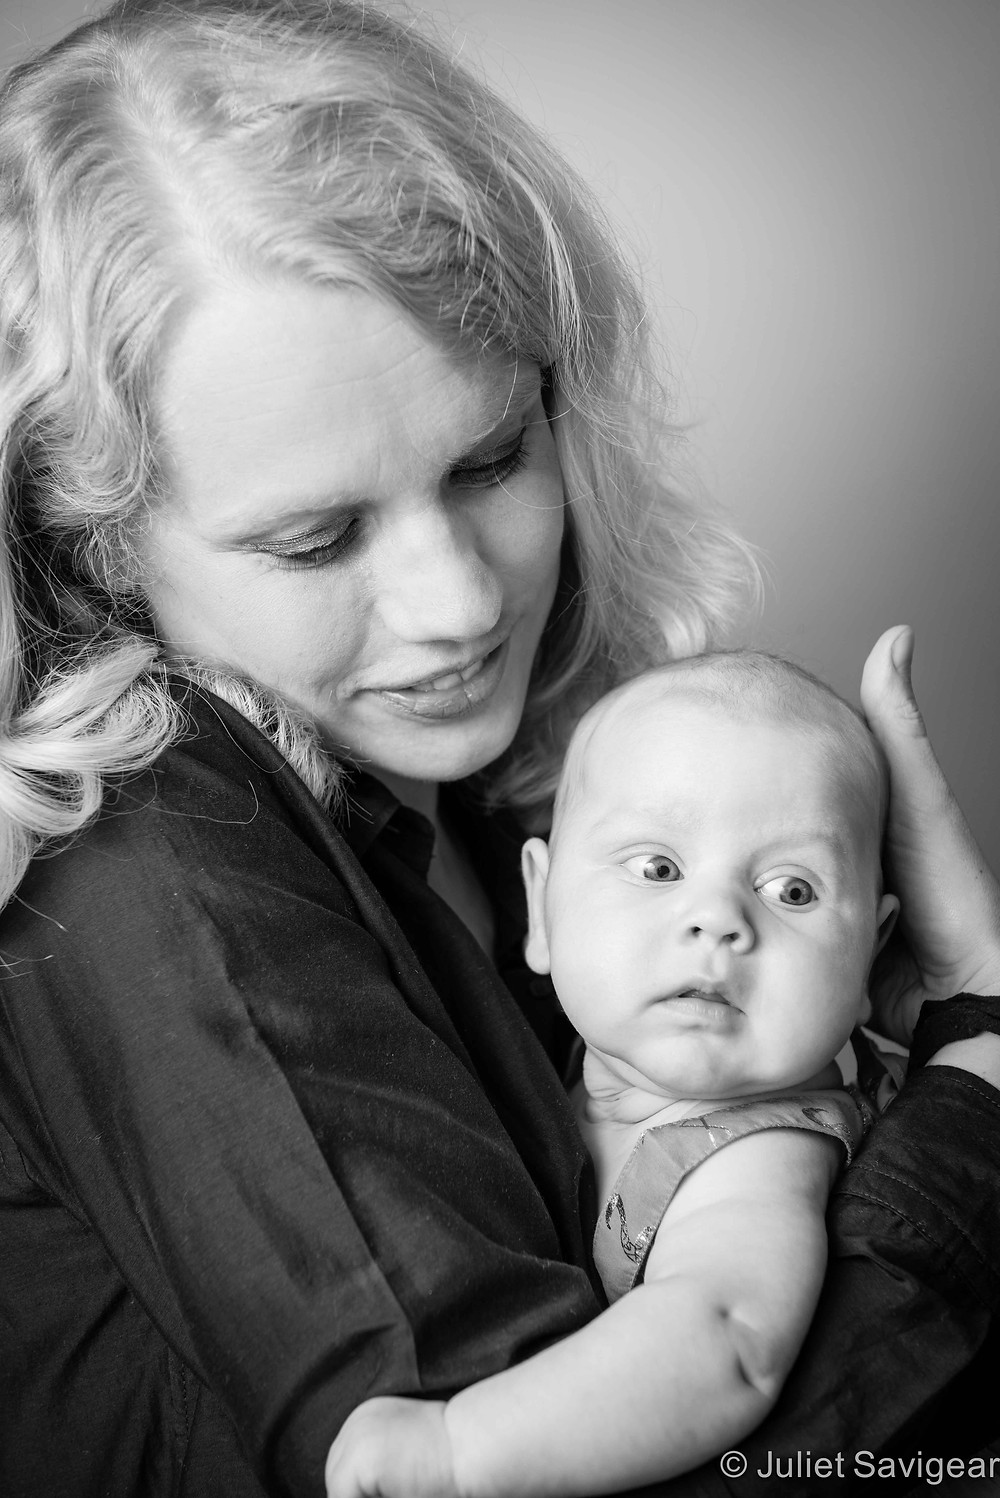 In Mummy's Arms - Baby & Family Photography, Orpington